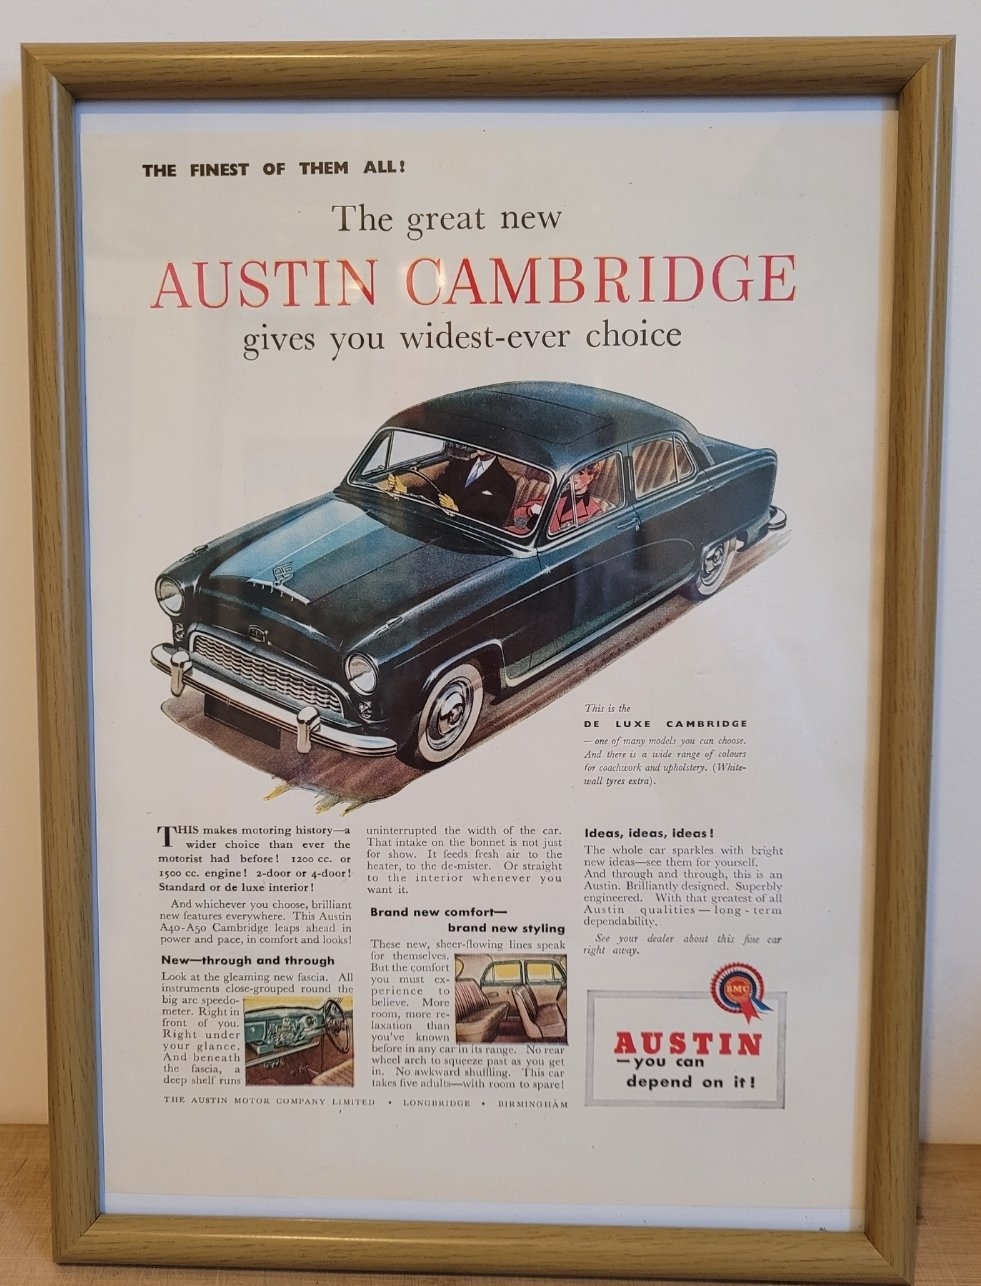 Original 1954 Austin Cambridge Framed Advert